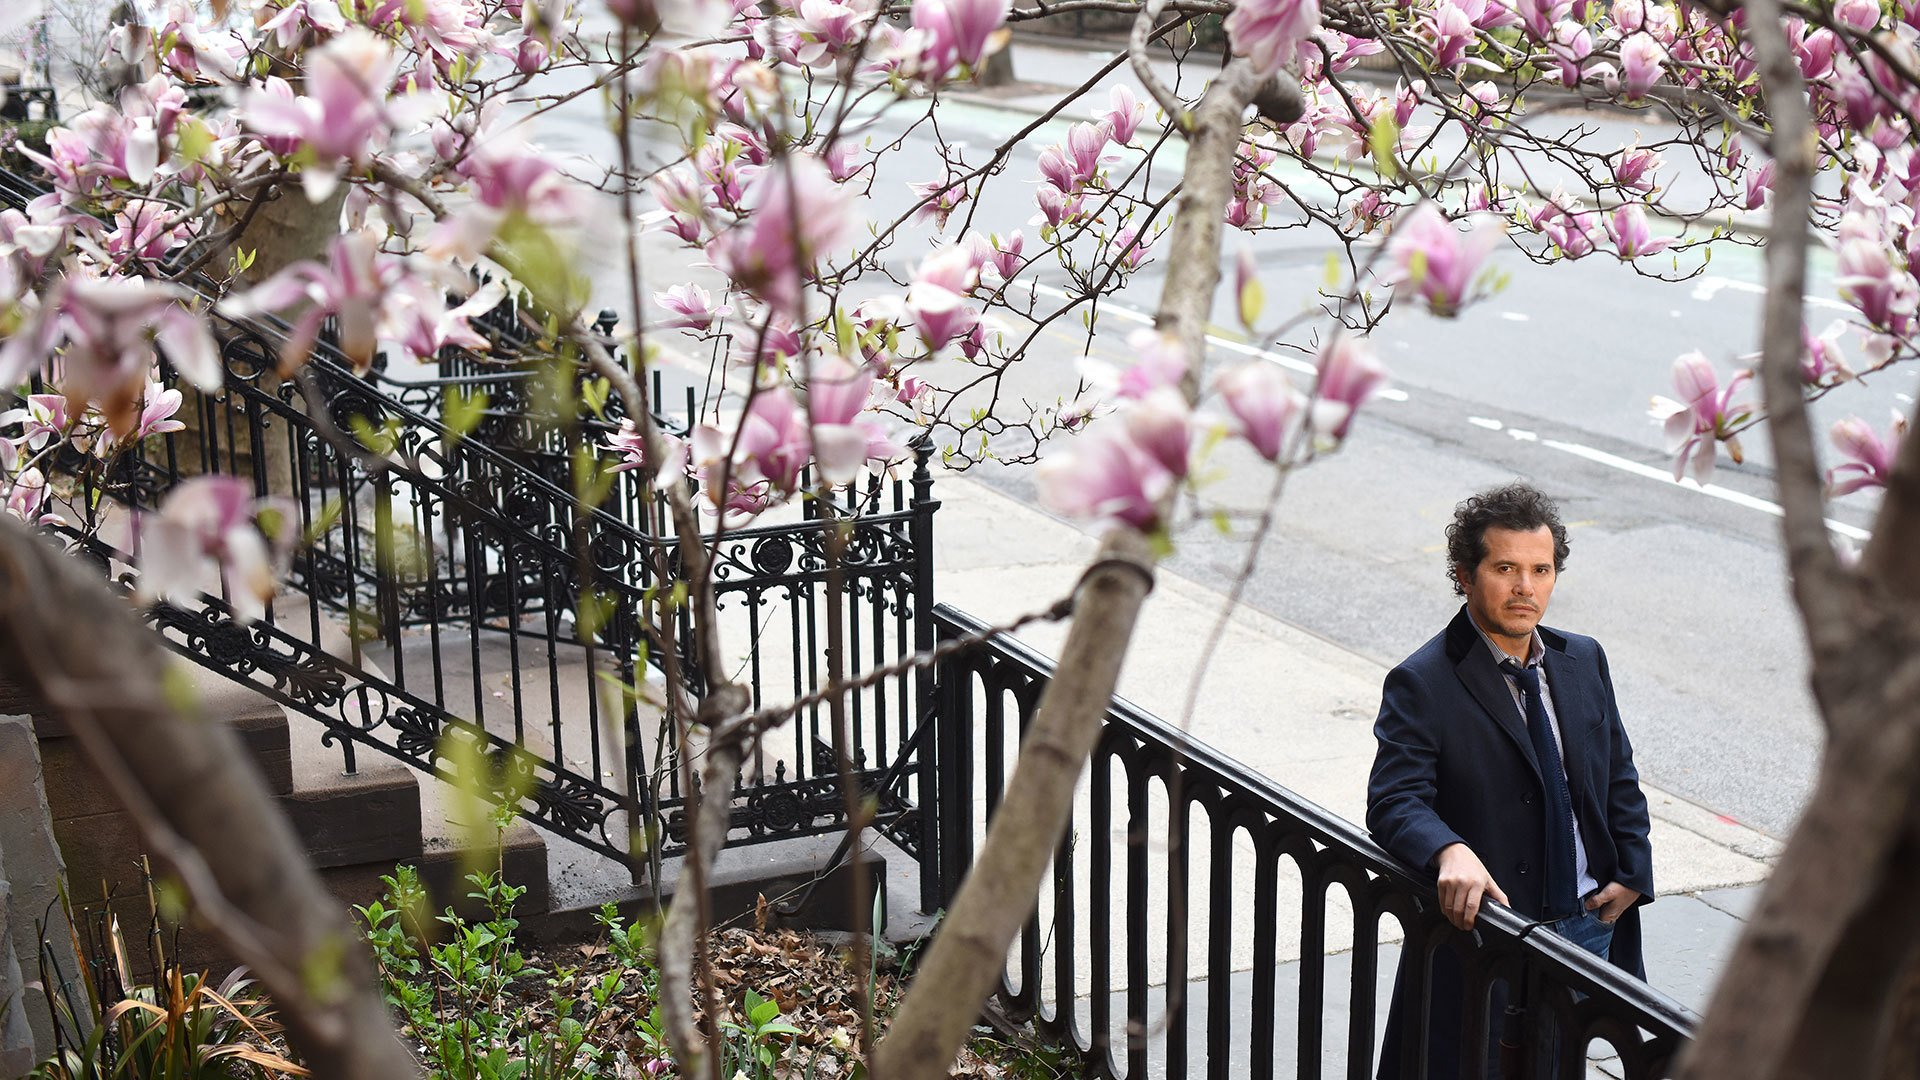 John Leguizamo under cherry blossoms